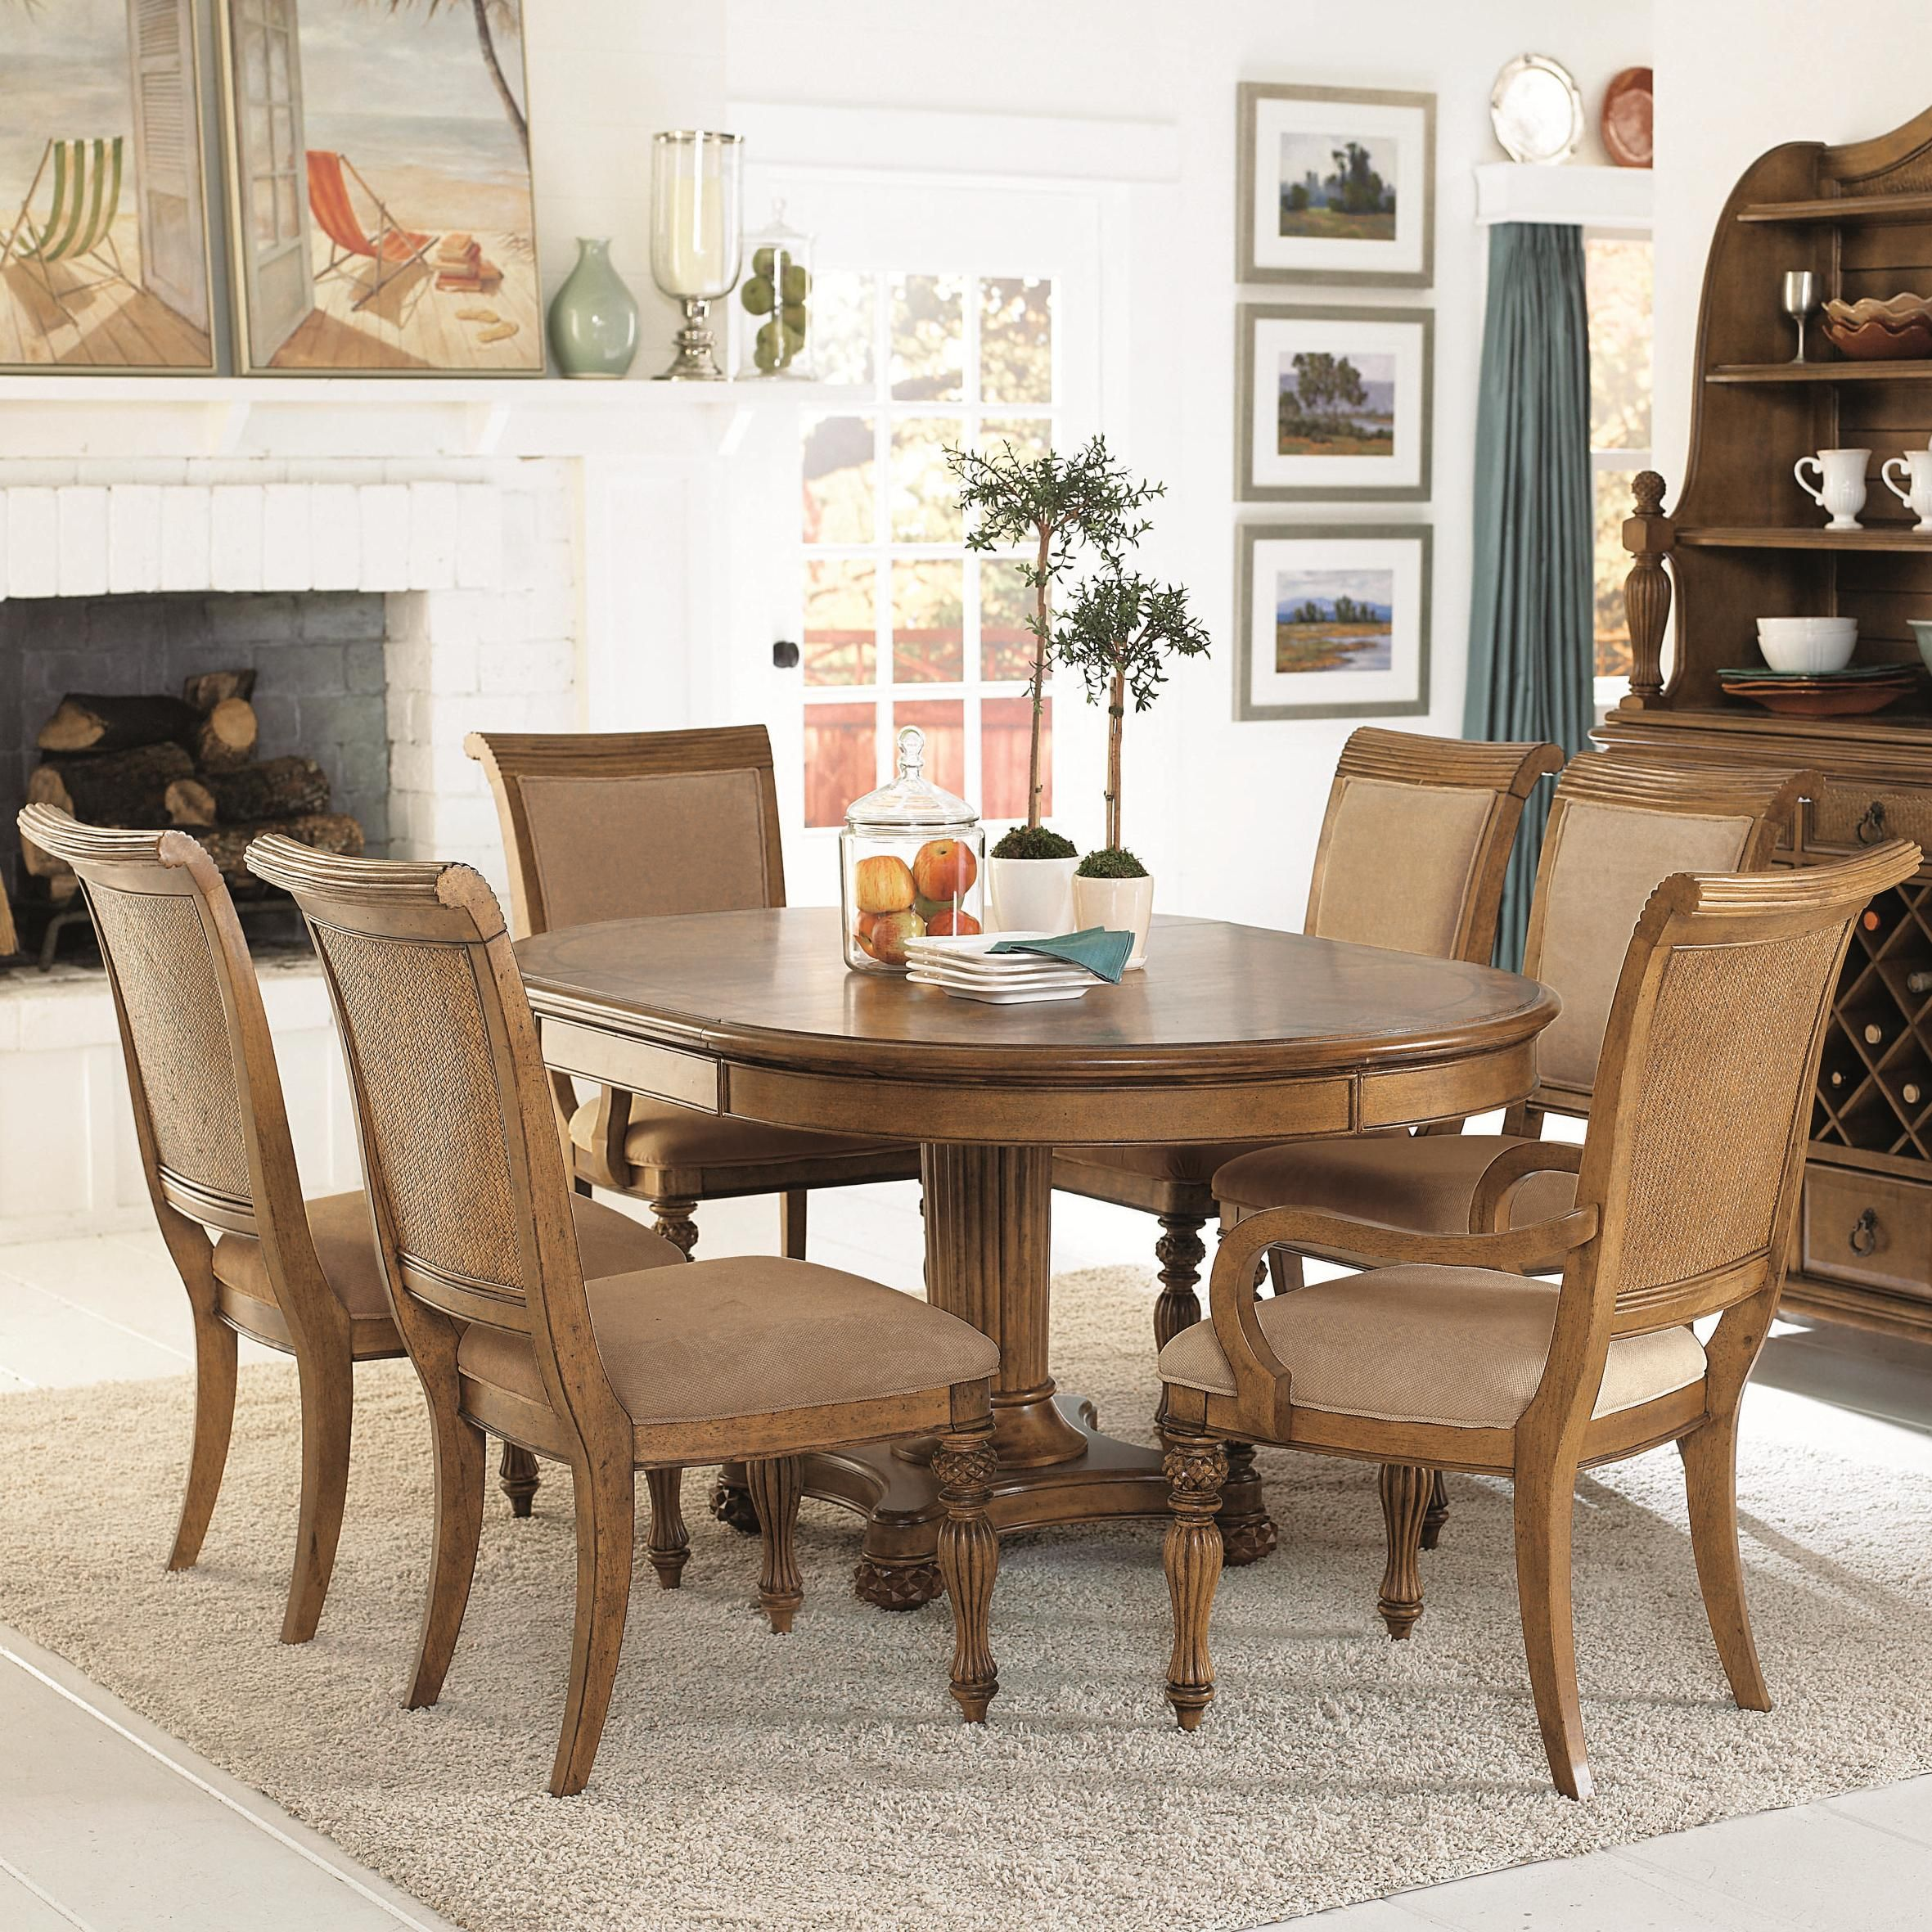 American Drew Grand Isle 7 Piece Set  Item Number 079701R2X639 Endearing 7 Piece Round Dining Room Set 2018